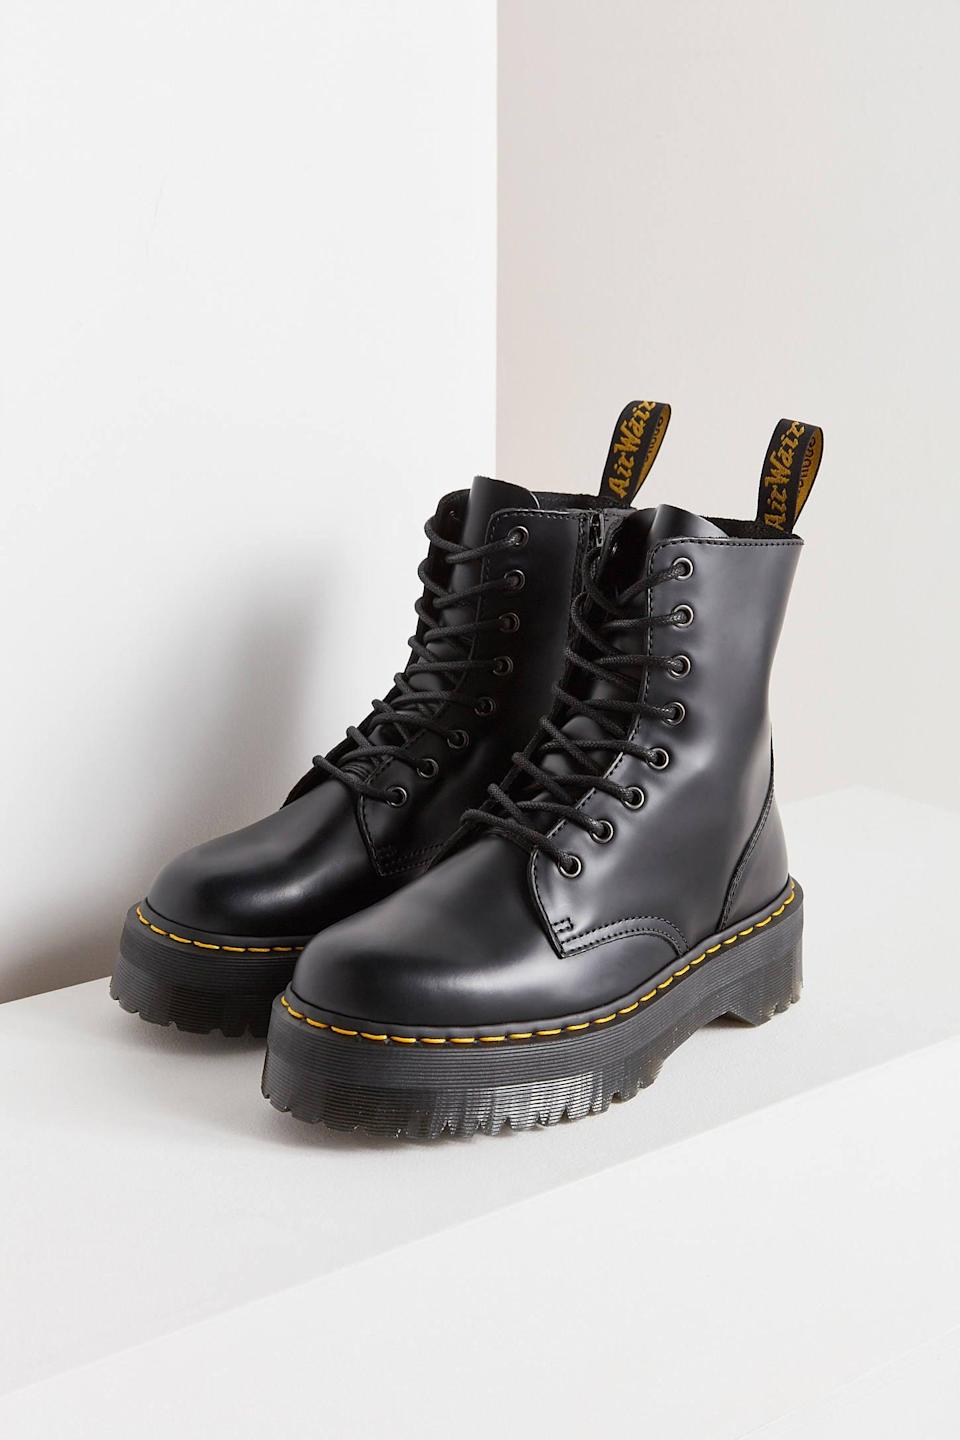 <p>These <span>Dr. Martens Jadon Platform 8-Eye Boots</span> ($180) are timeless staples that have gotten a 2020 refresh. The platform is cool, and gives us the boost we're looking for in a boot.</p>